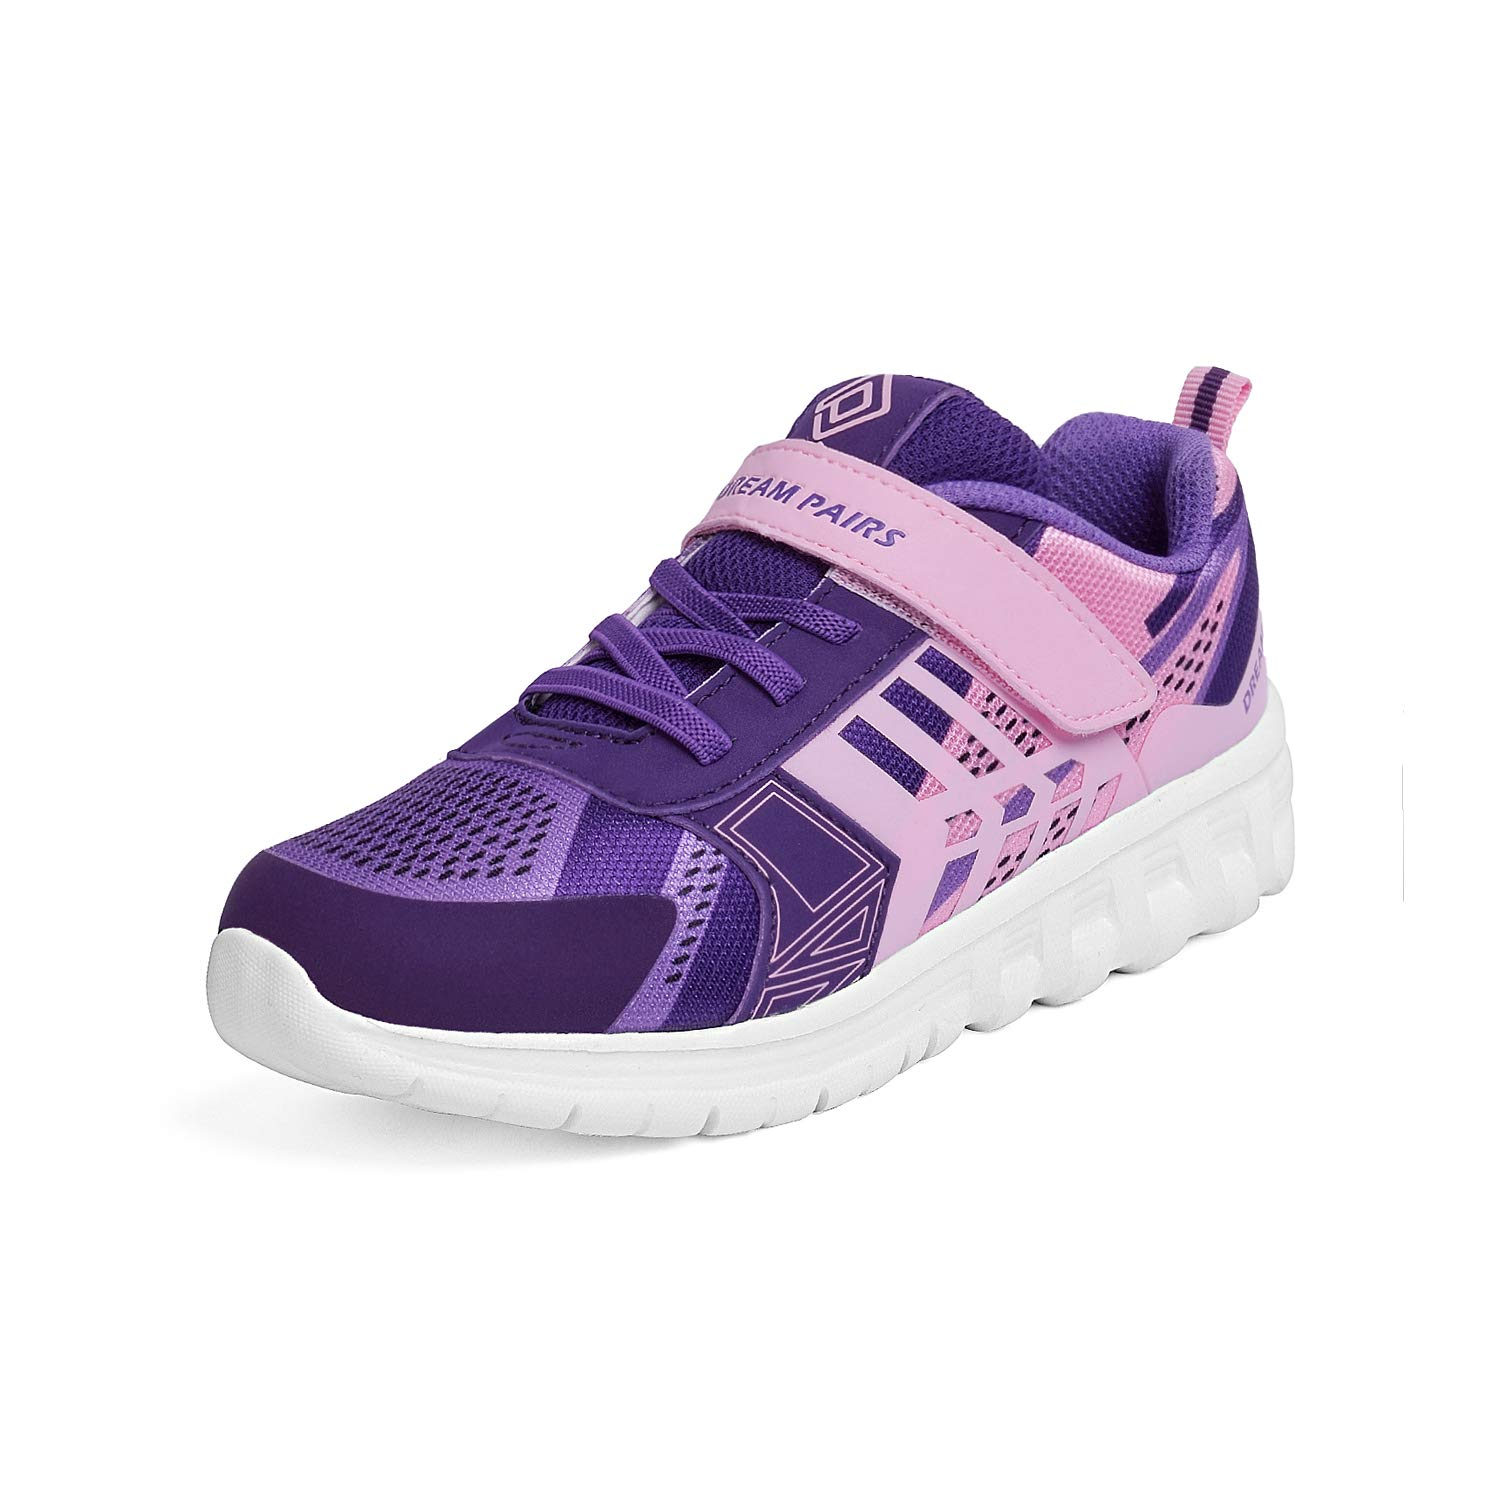 DREAM PAIRS Girls KD18002K Lightweight Breathable Running Athletic Sneakers Shoes Pink Purple, Size 3 M US Little Kid